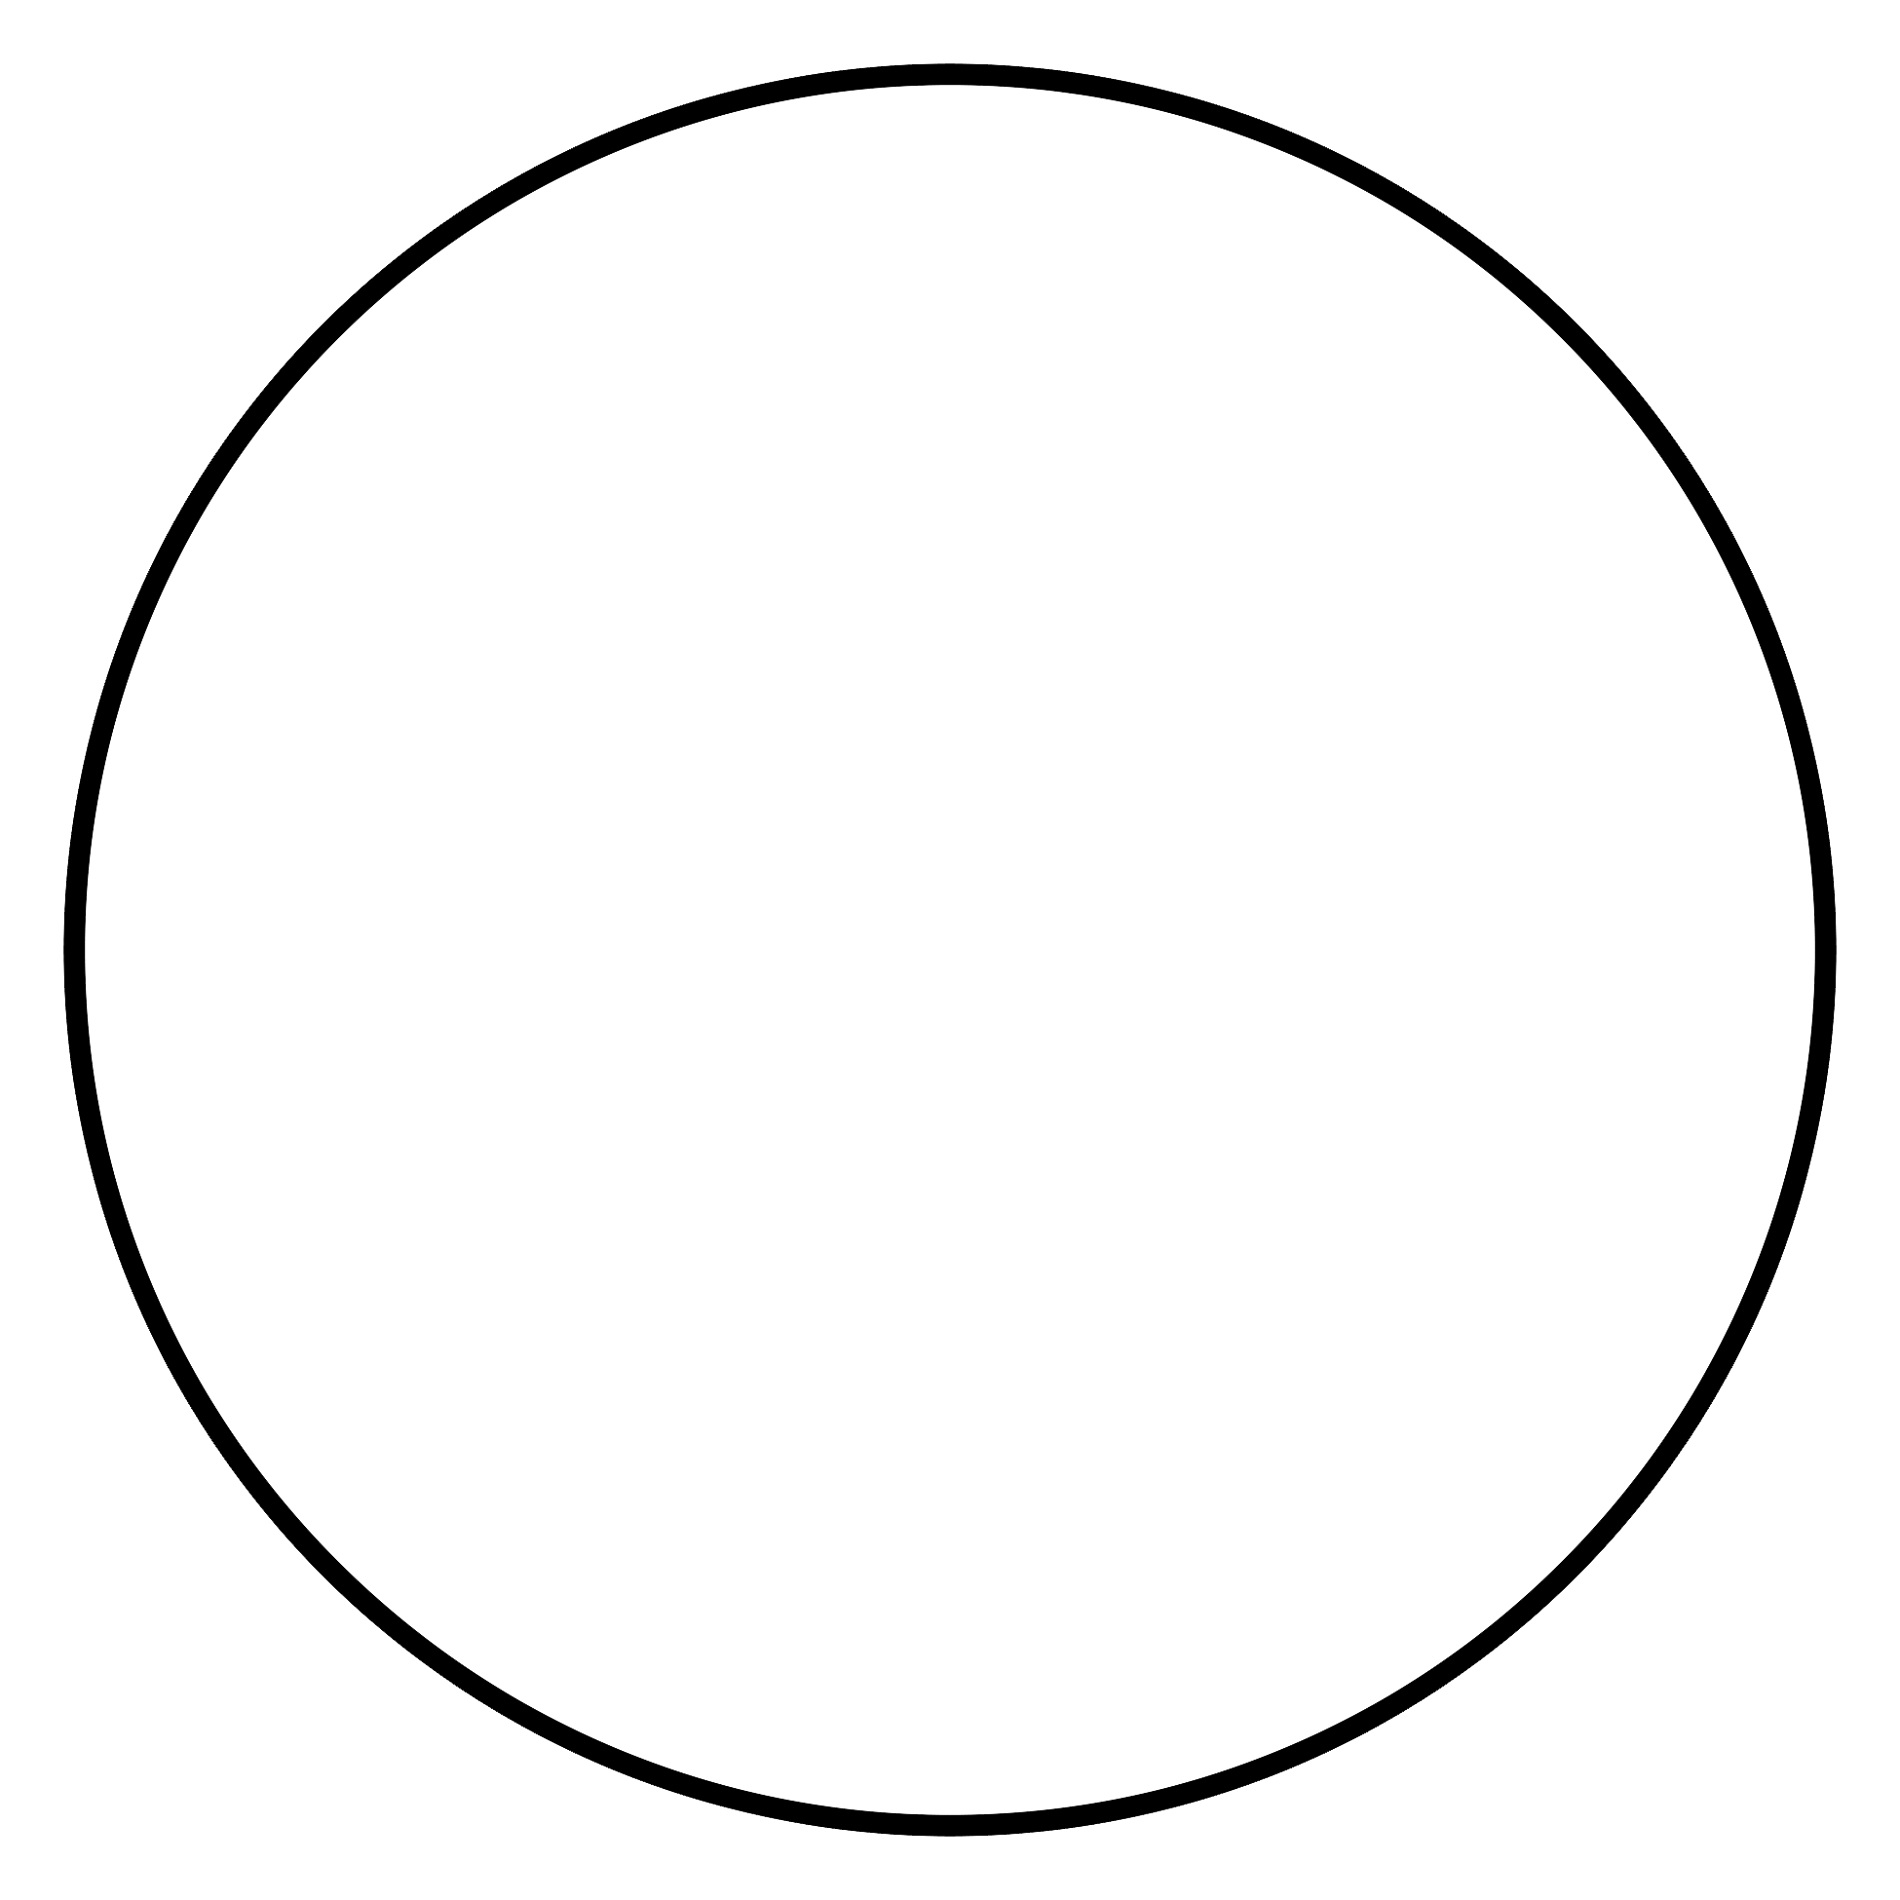 Blank Percent Circle Template